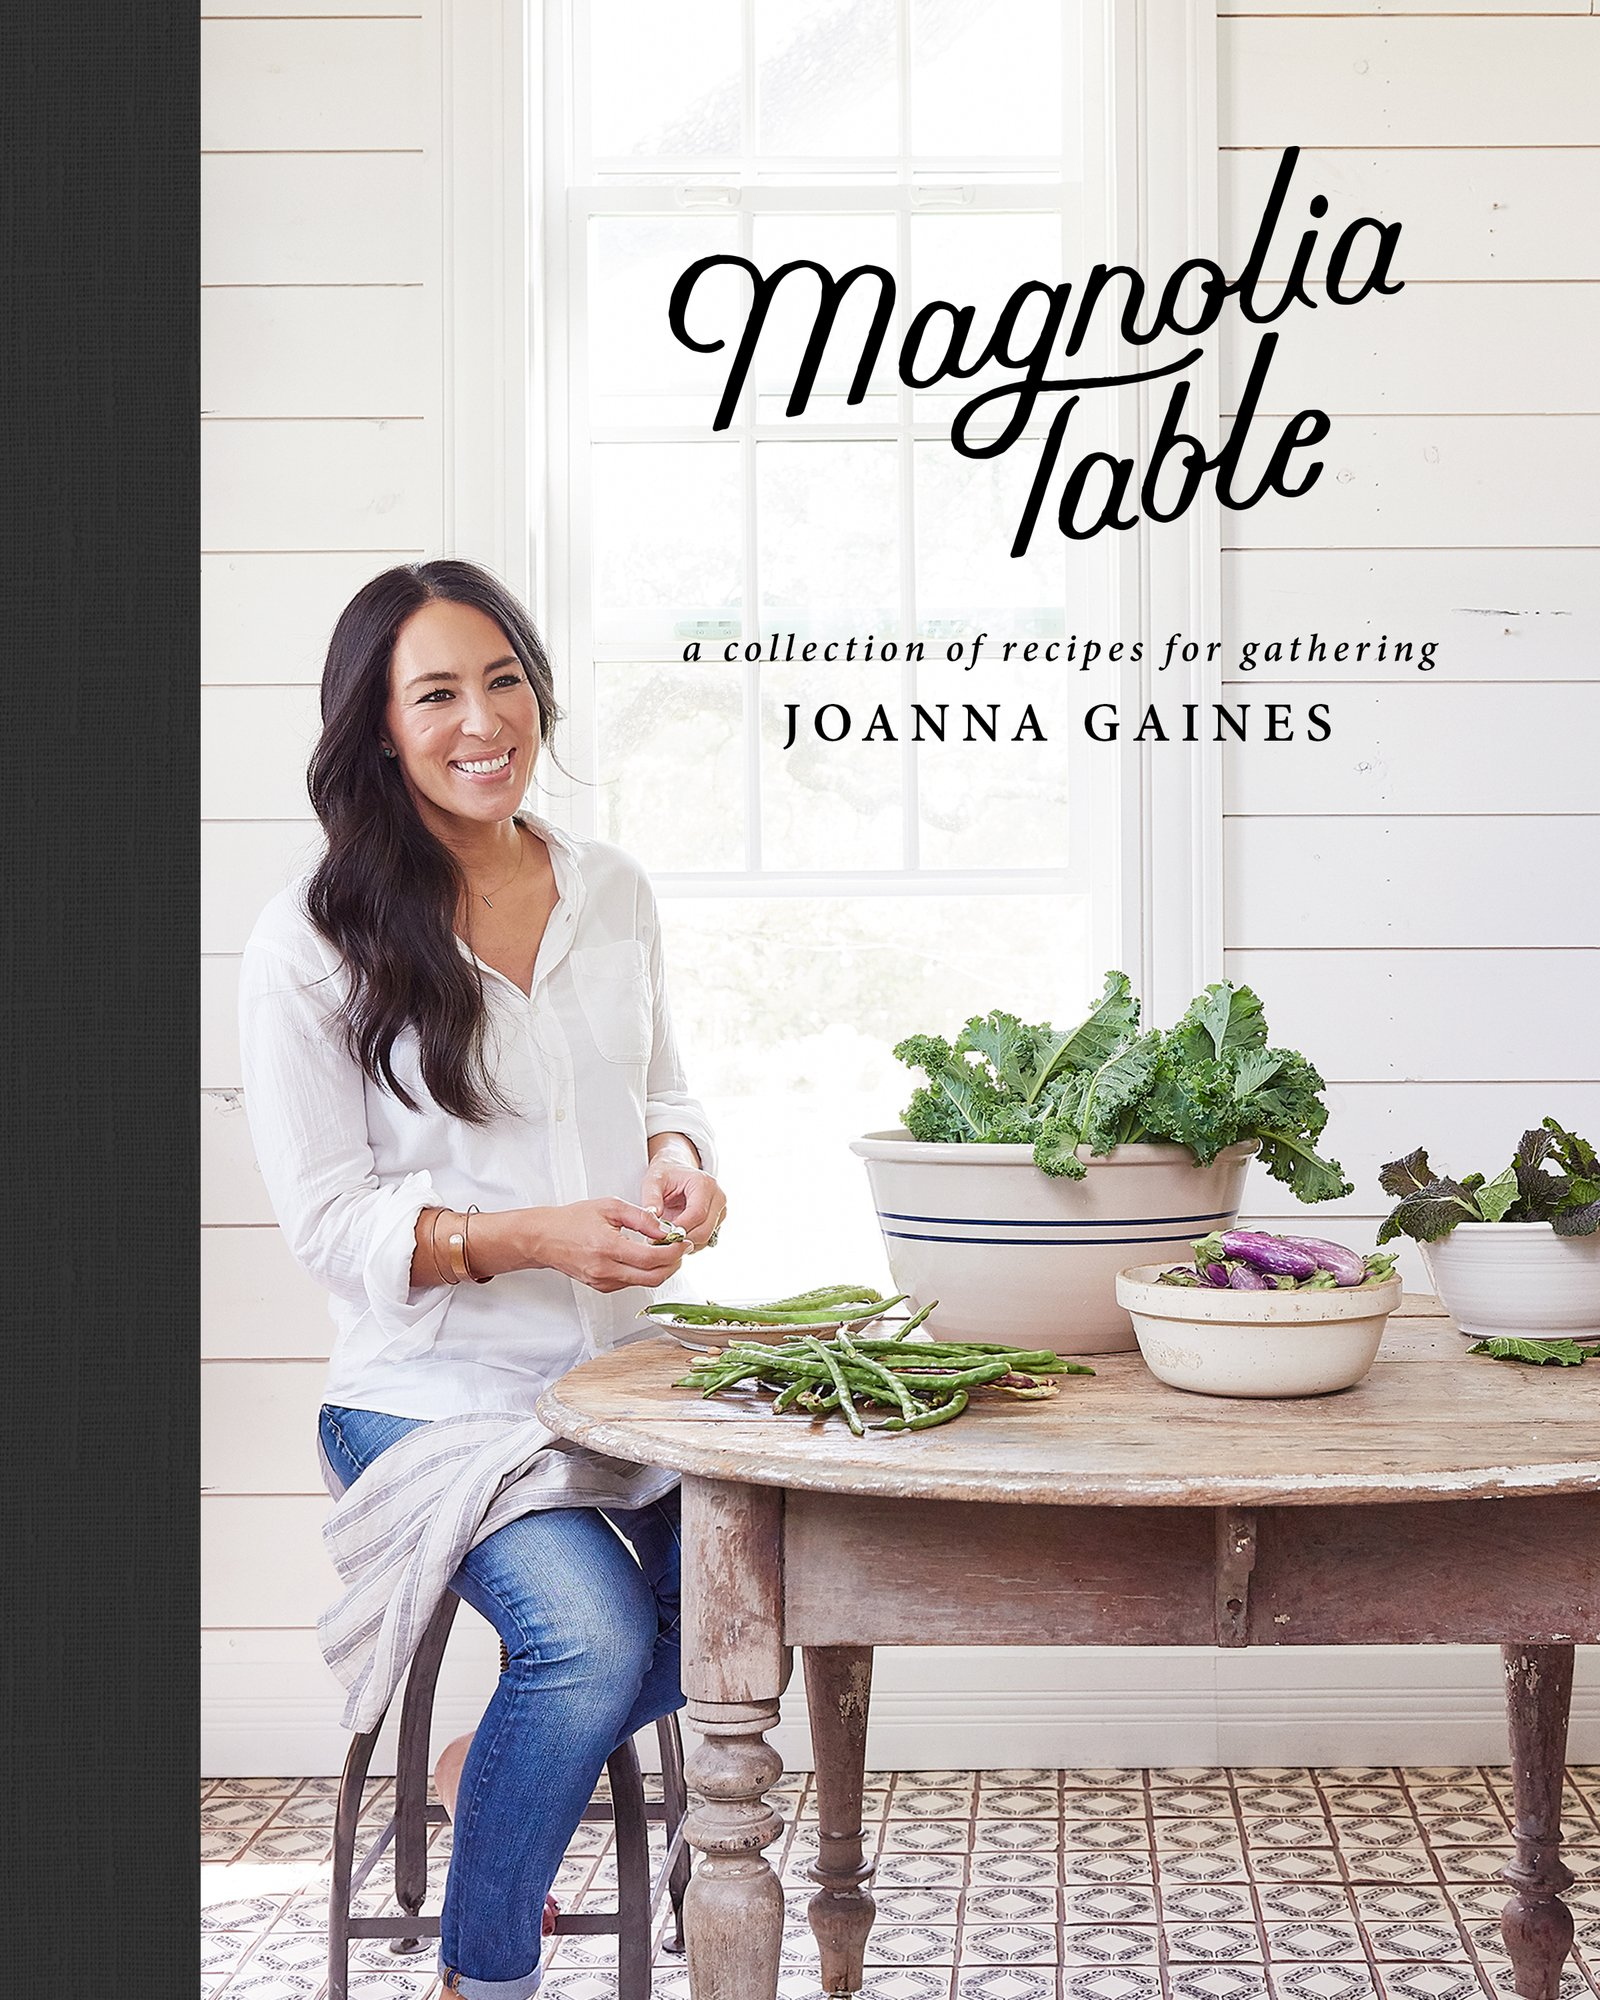 Joanna Gaines Cookbook Magnolia Table